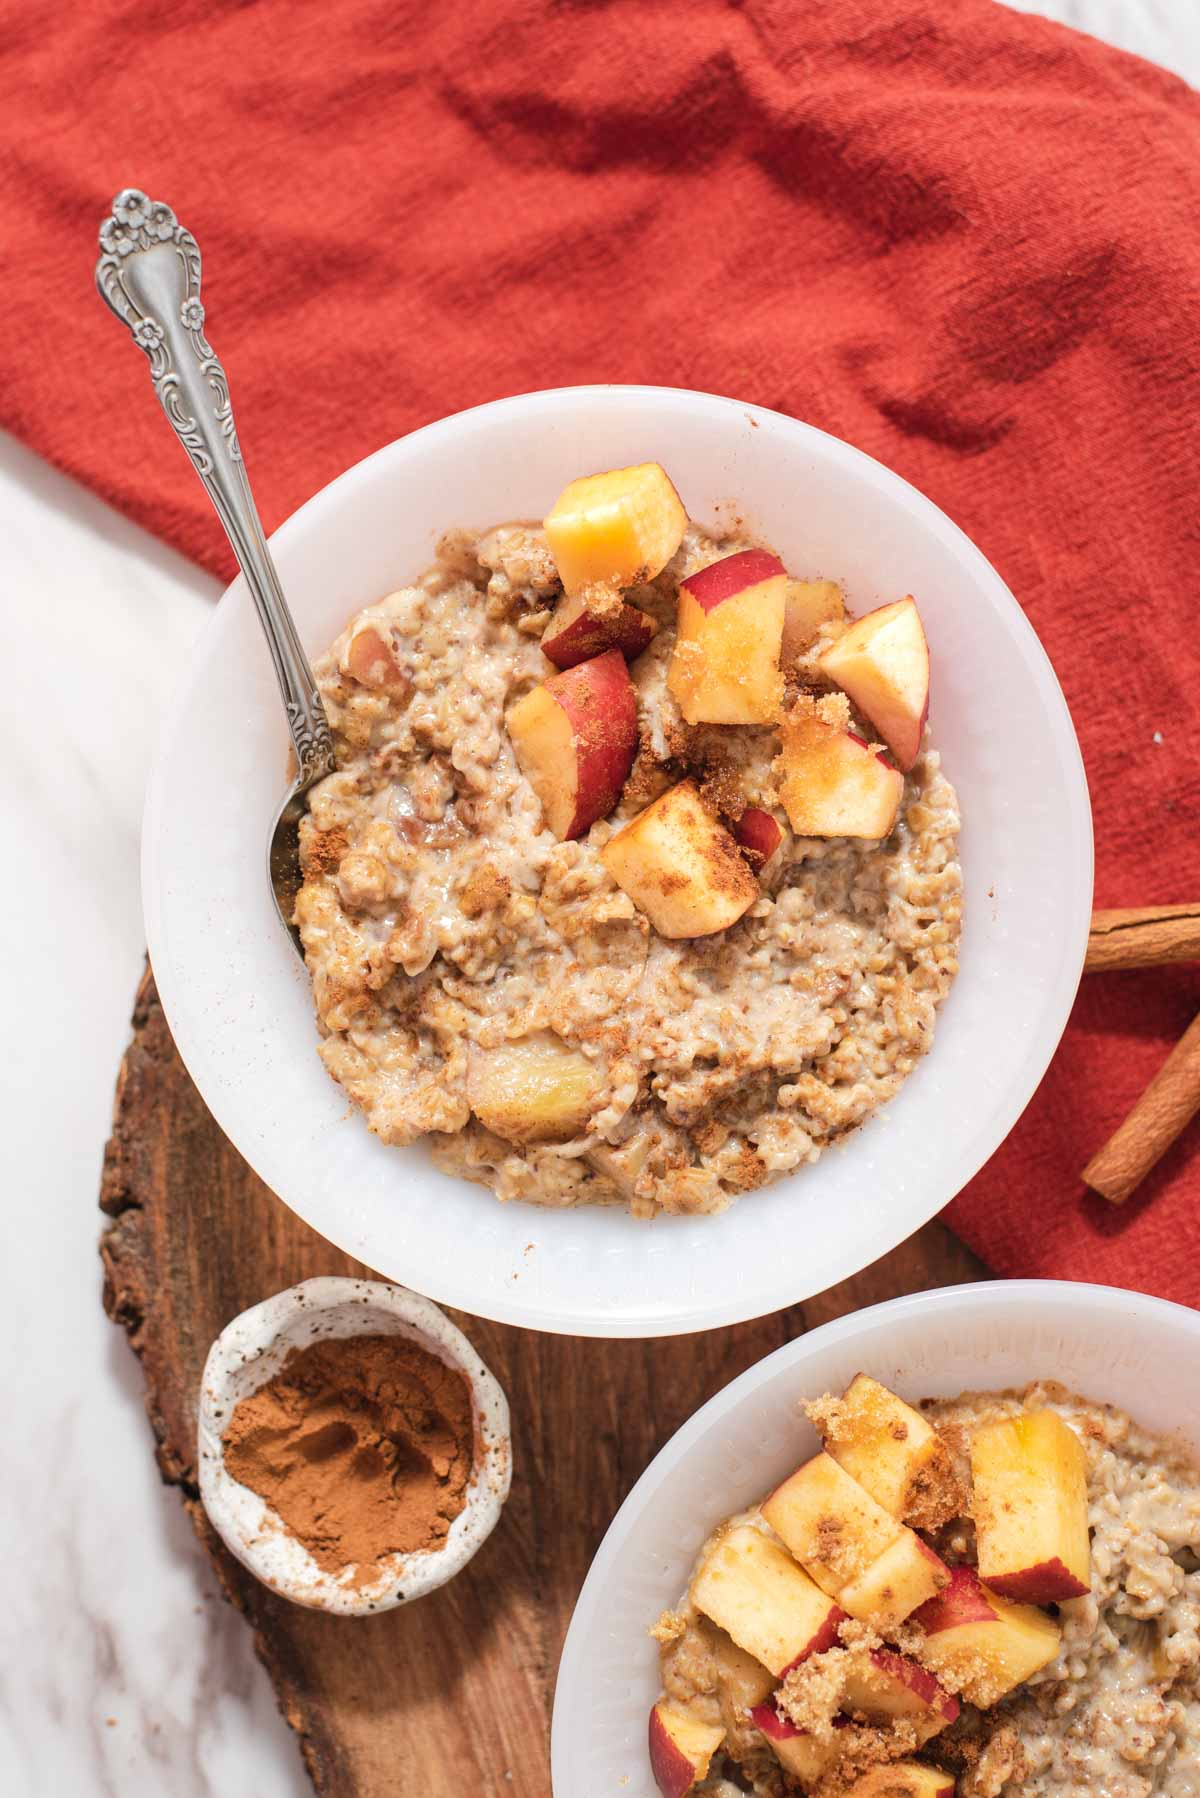 Overhead view of white bowl filled with oatmeal and diced apples